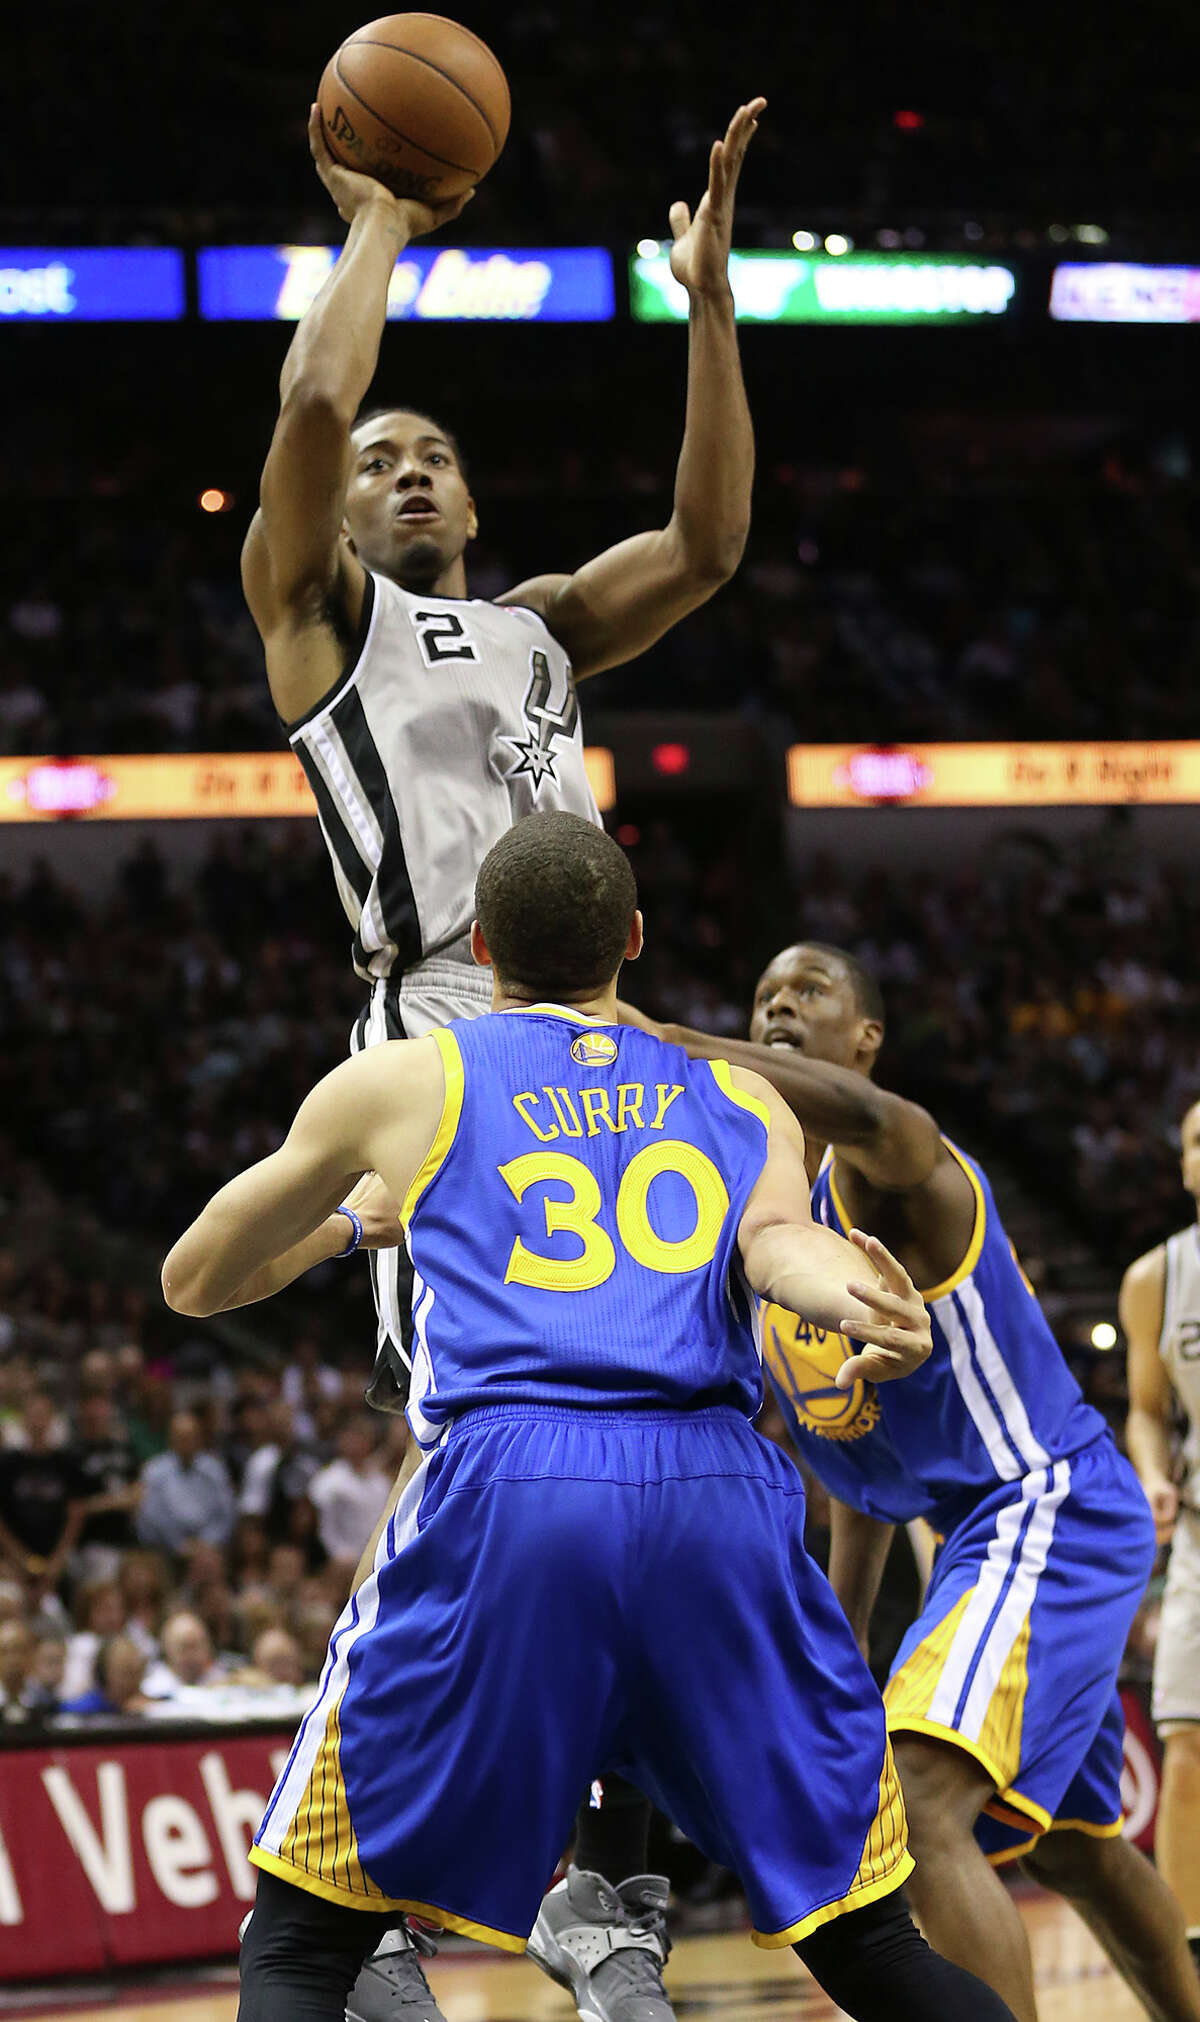 San Antonio Spurs' Kawhi Leonard shoots over Golden State Warriors' Stephen Curry and Harrison Barnes during the first half of Game 5 in the NBA Western Conference semifinals at the AT&T Center, Tuesday, May 14, 2013.